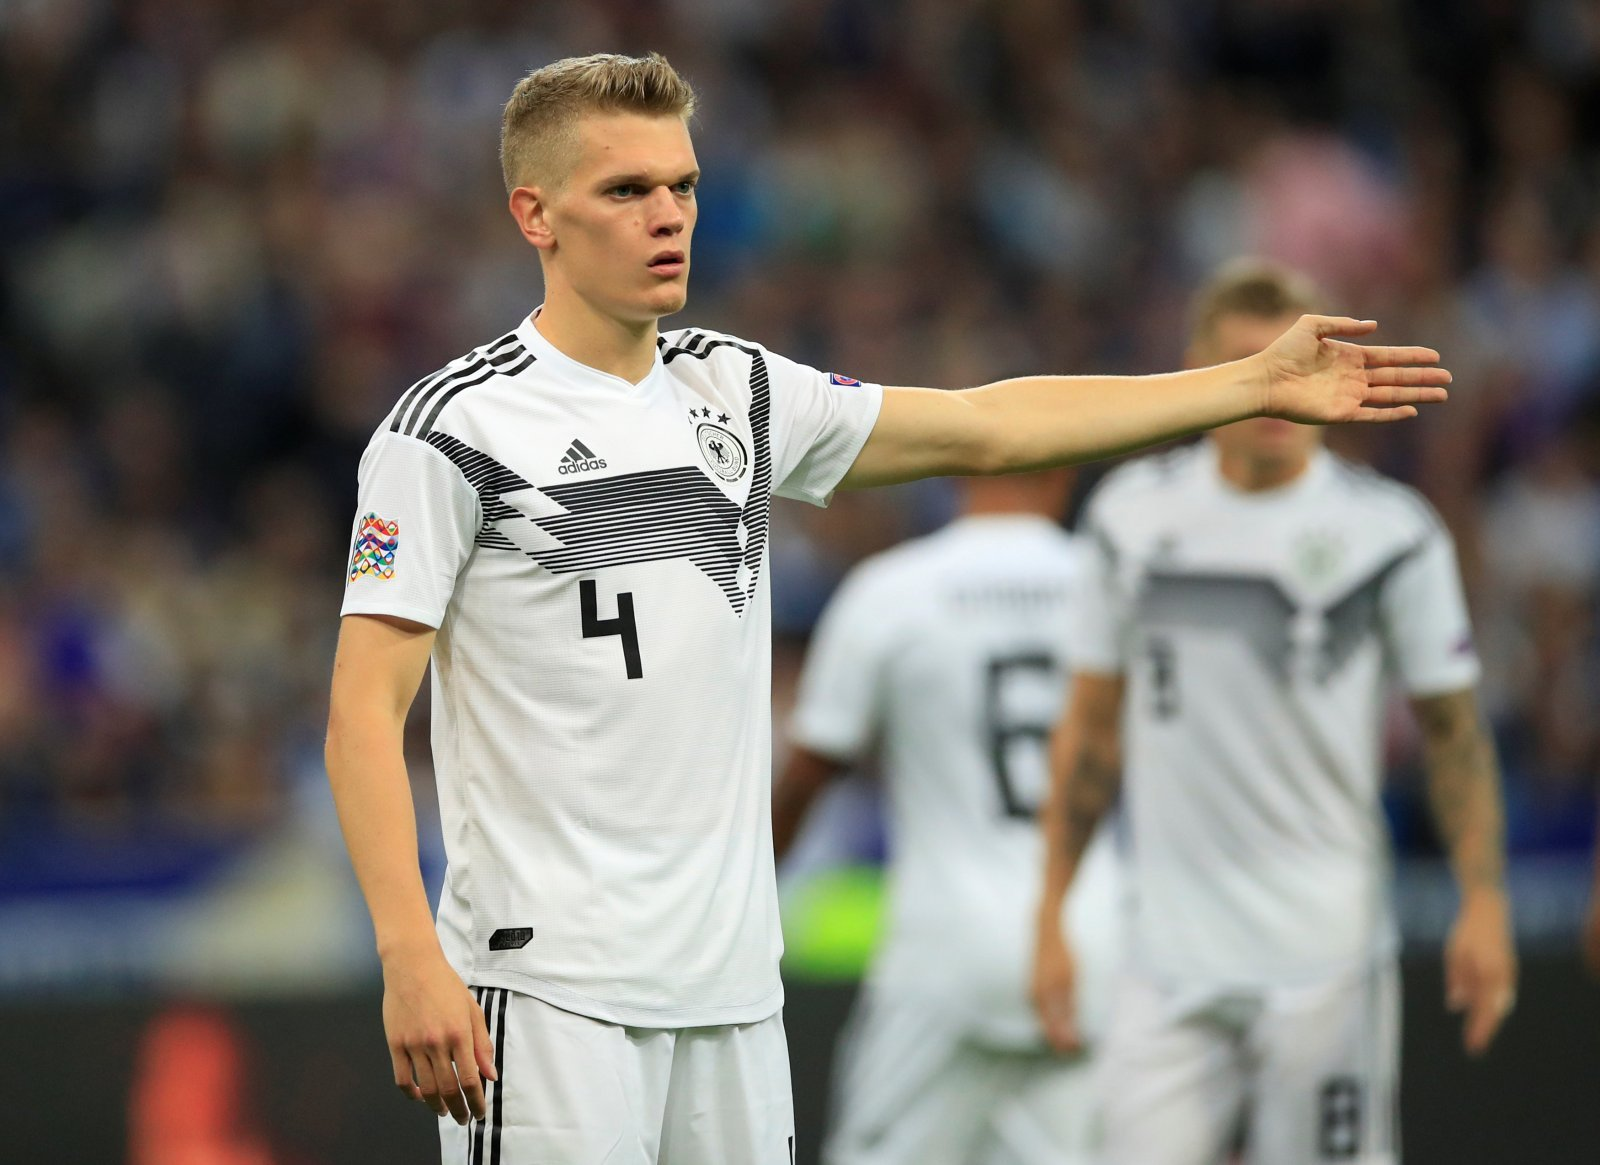 Liverpool learn price they will have to pay for Matthias Ginter